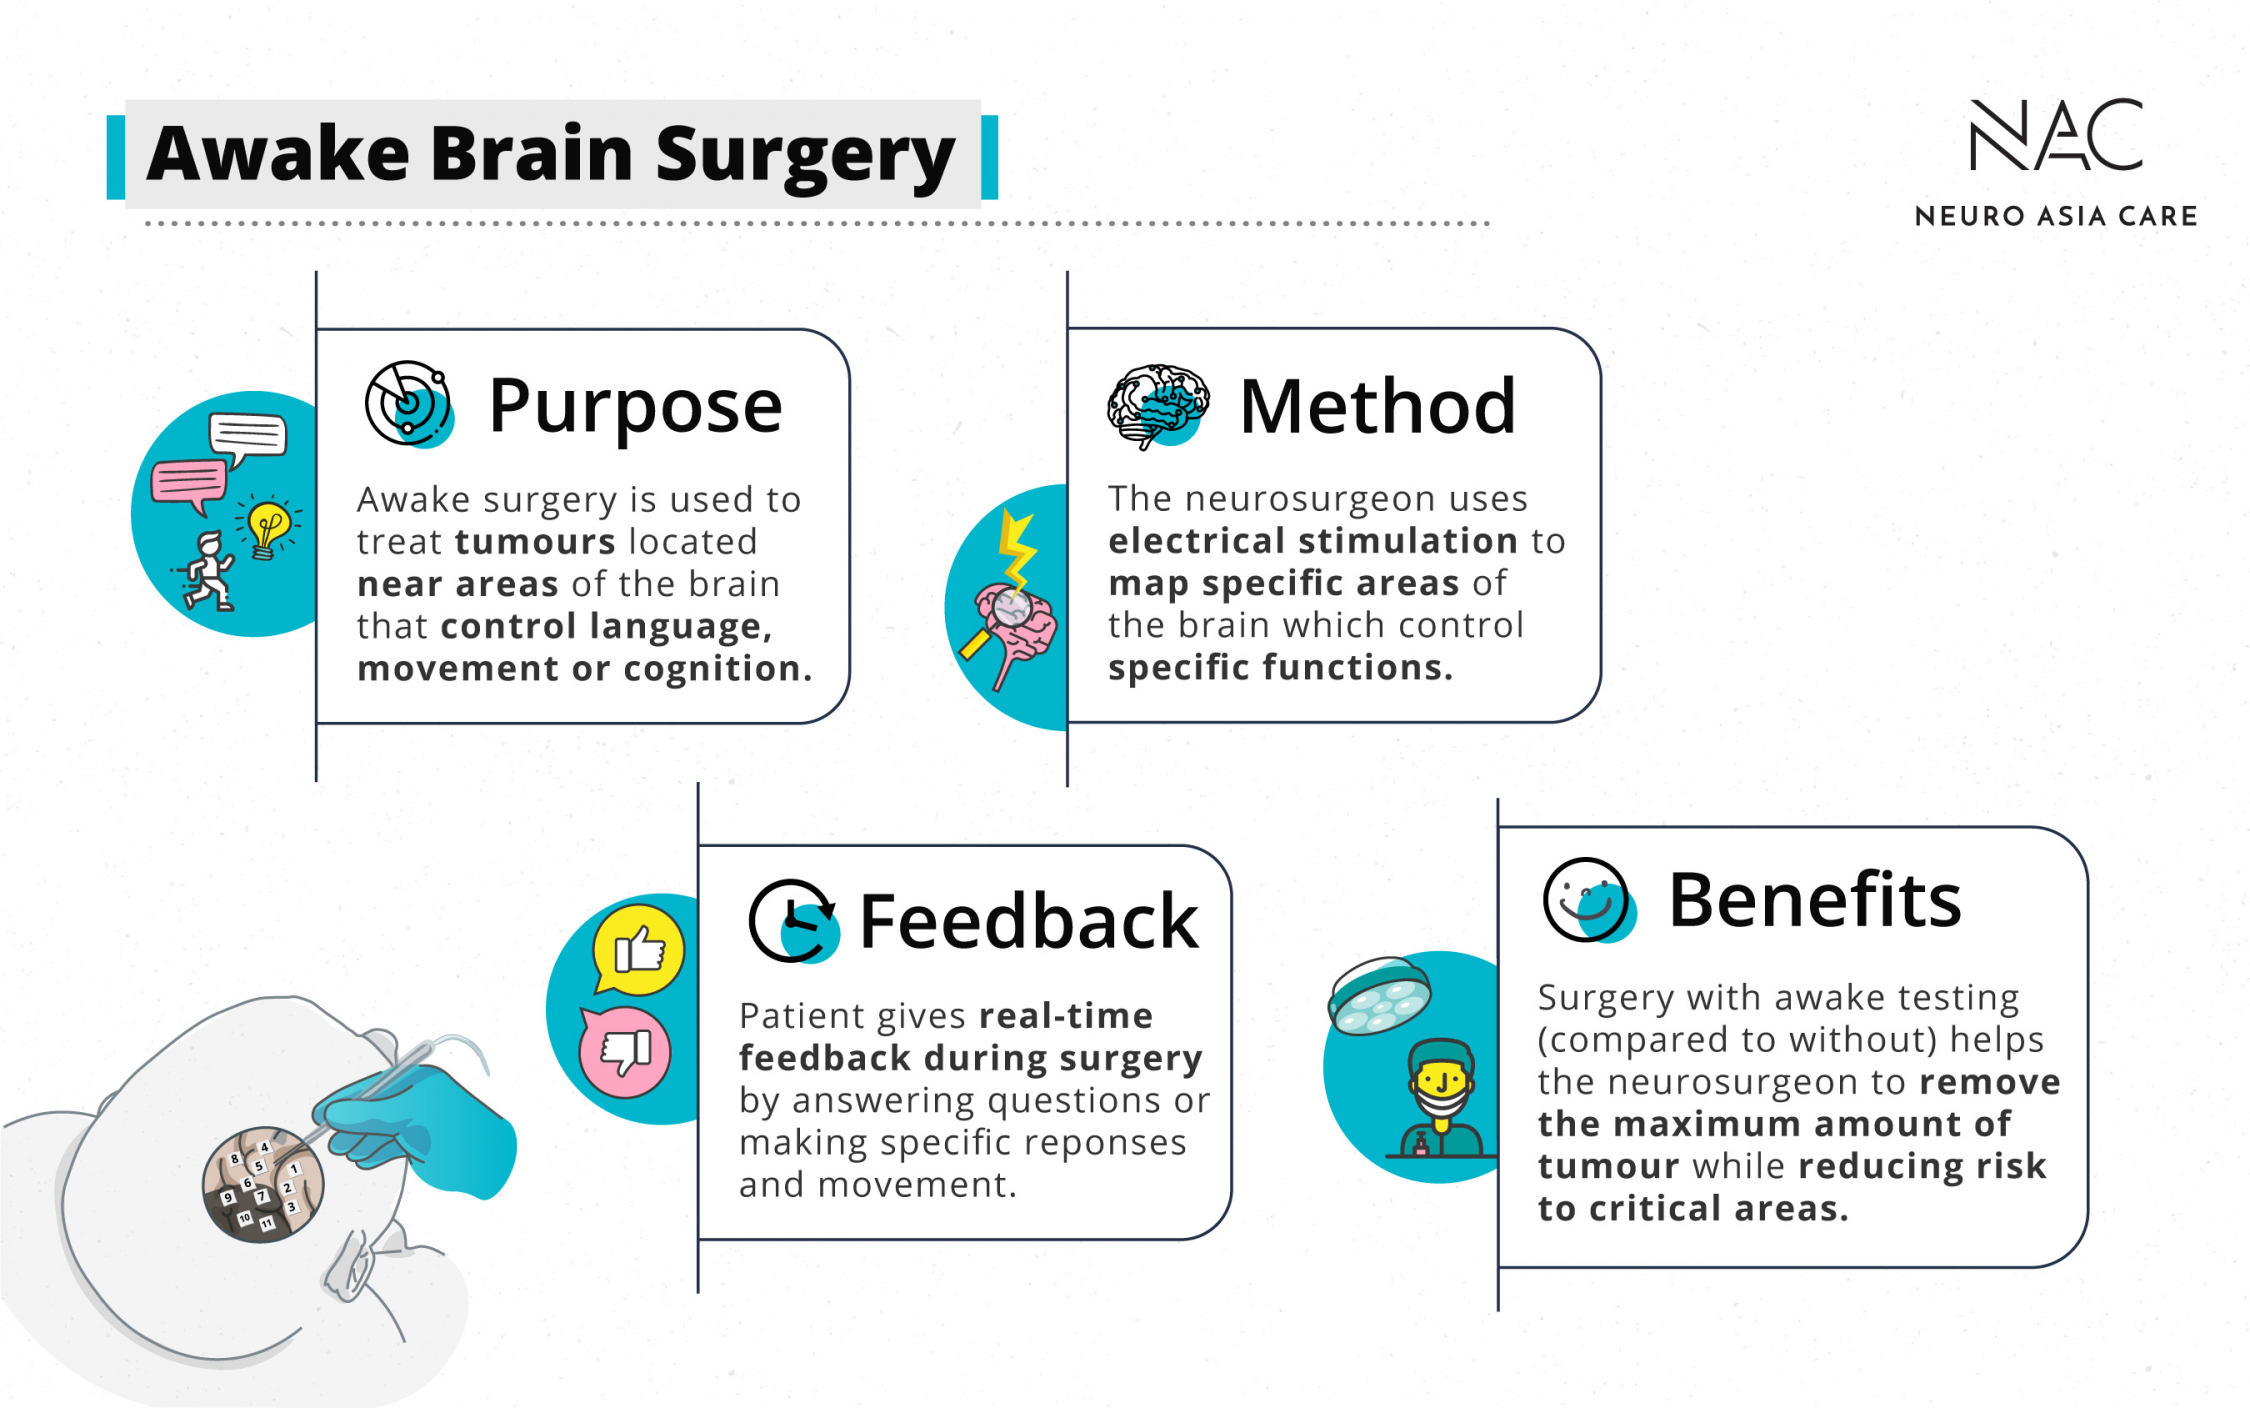 Important facts about awake brain surgery in a nutshell